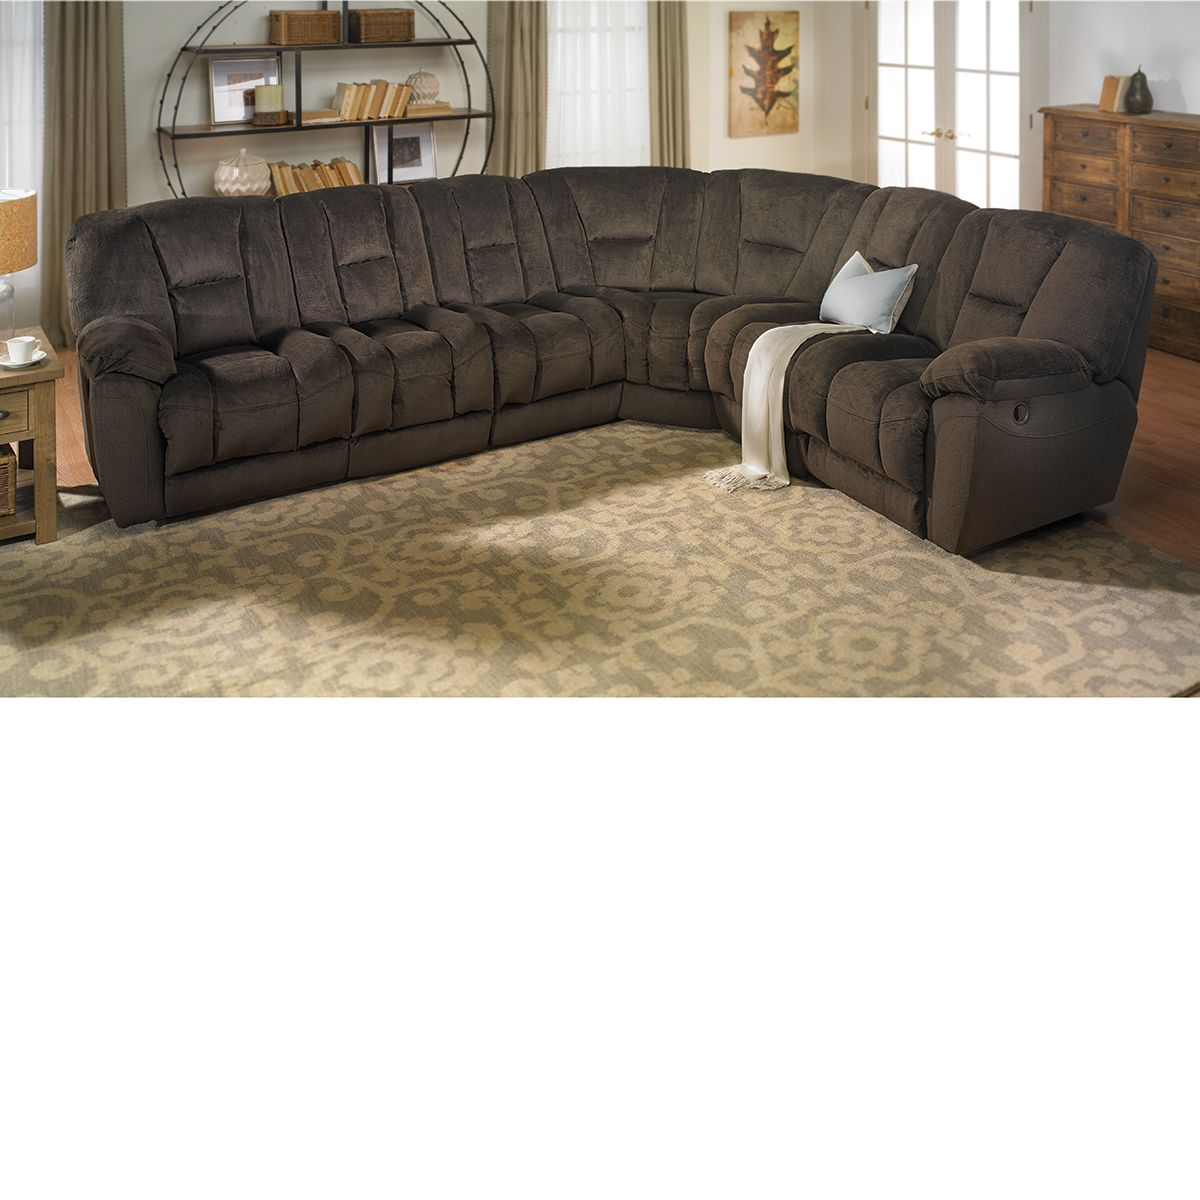 Dual Reclining Memory Foam Sectional